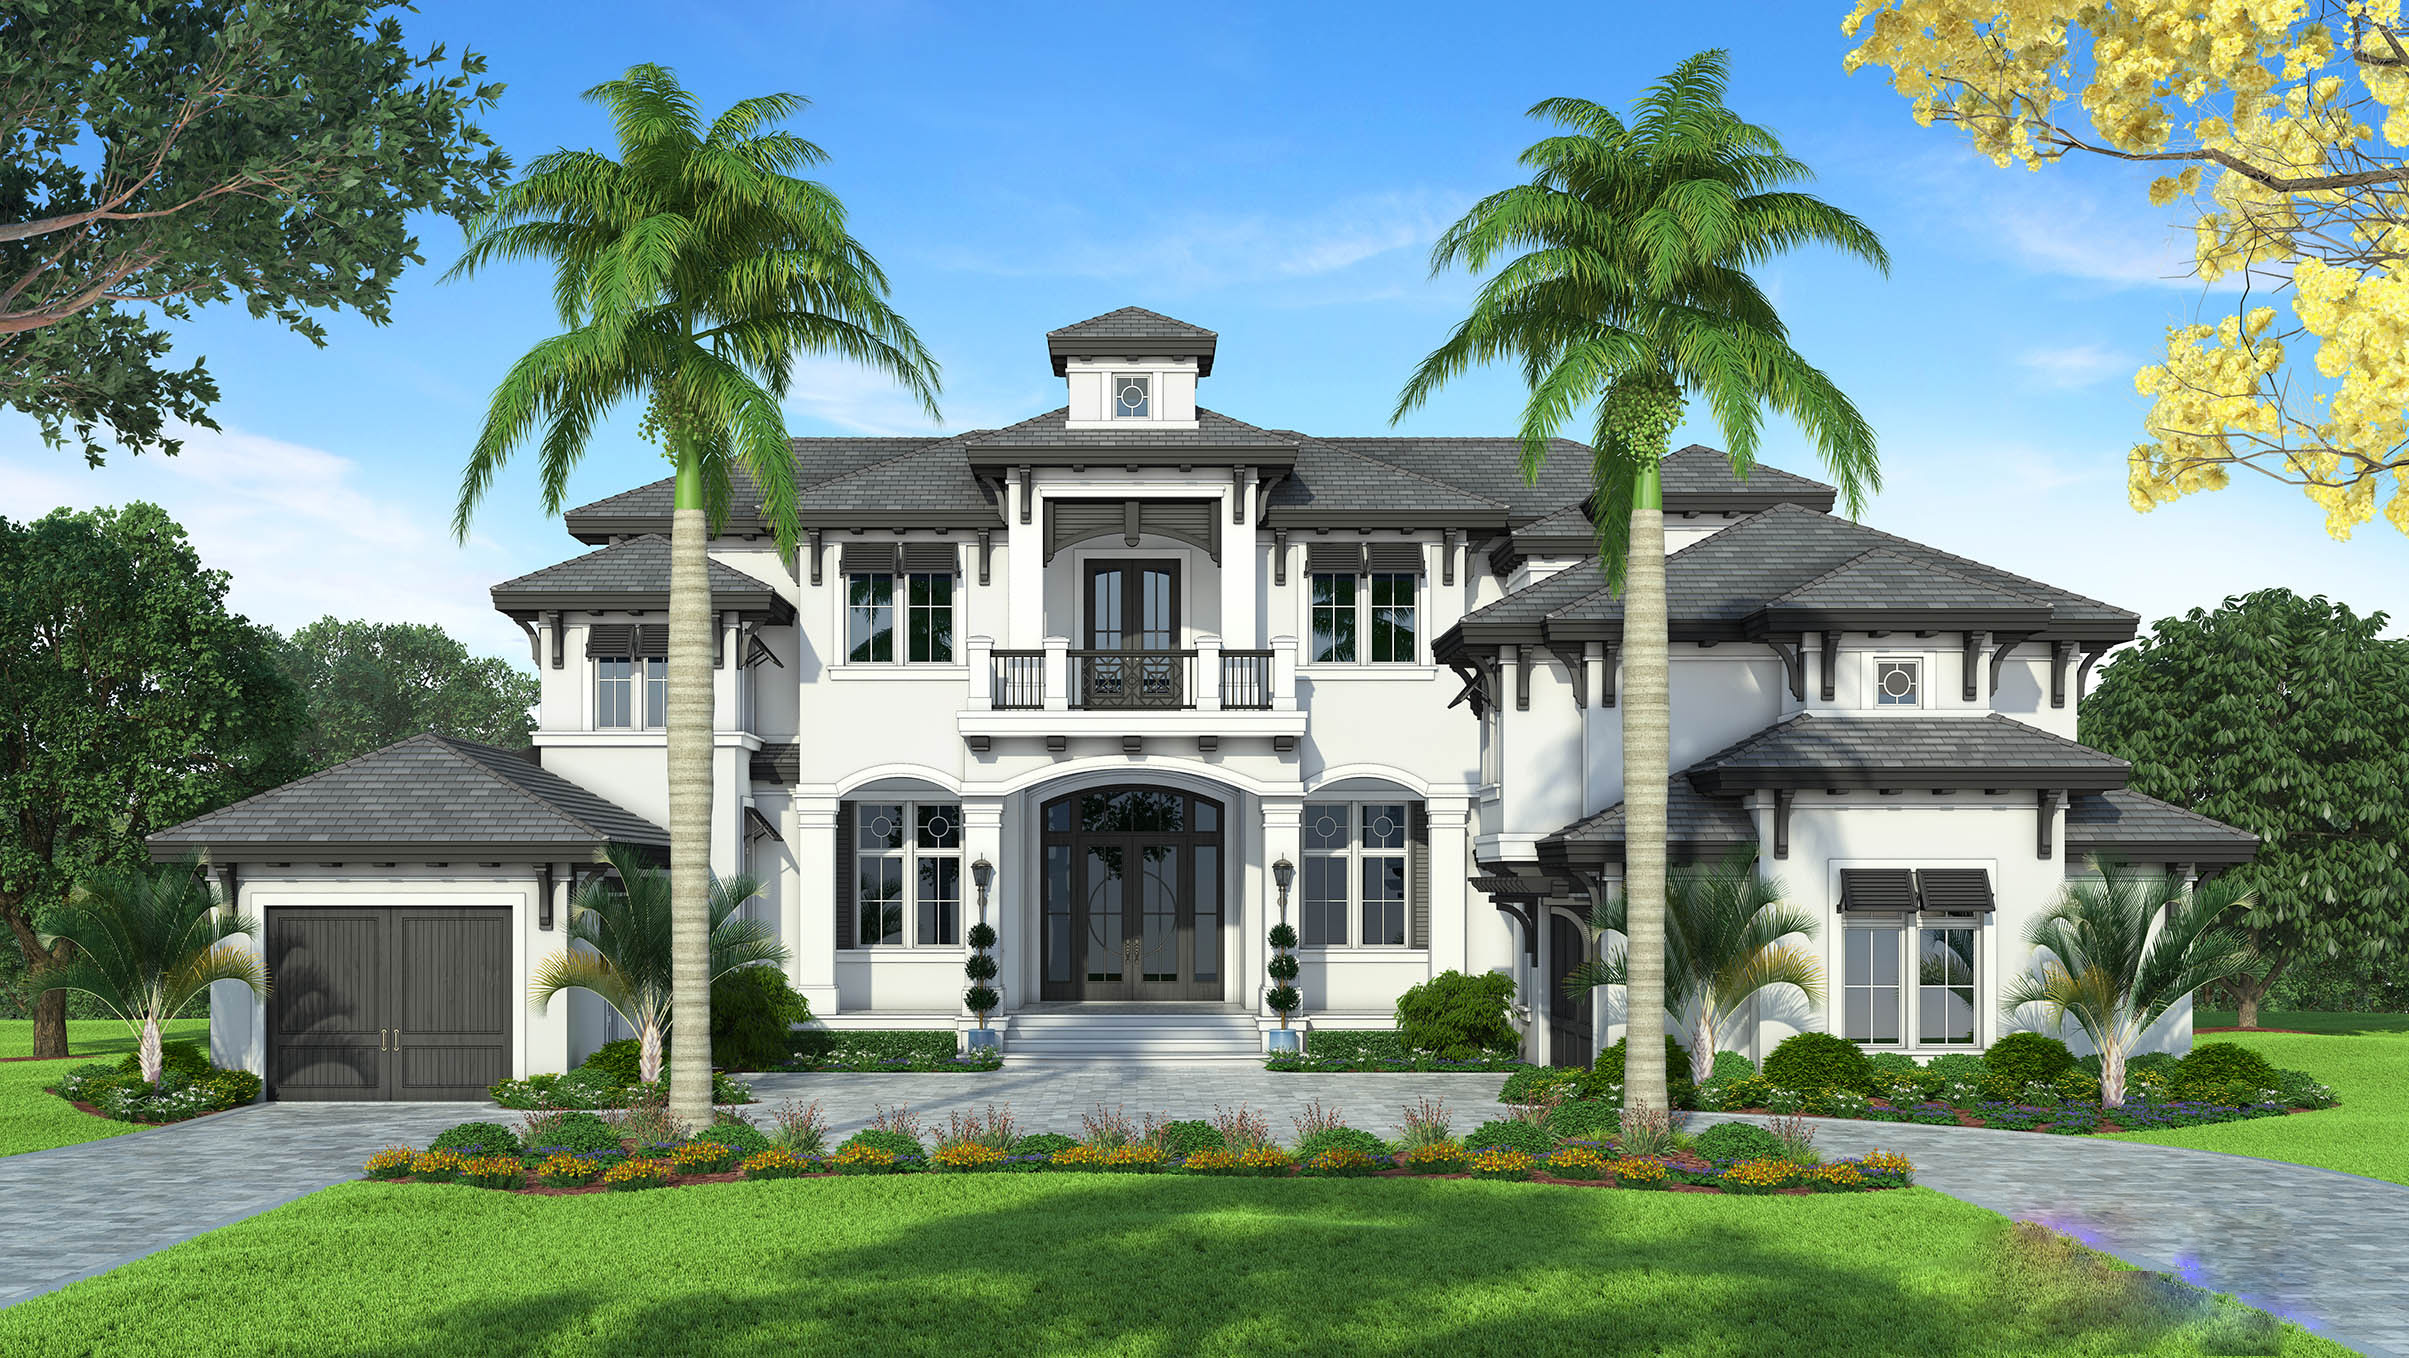 Grand Florida House - front rendering